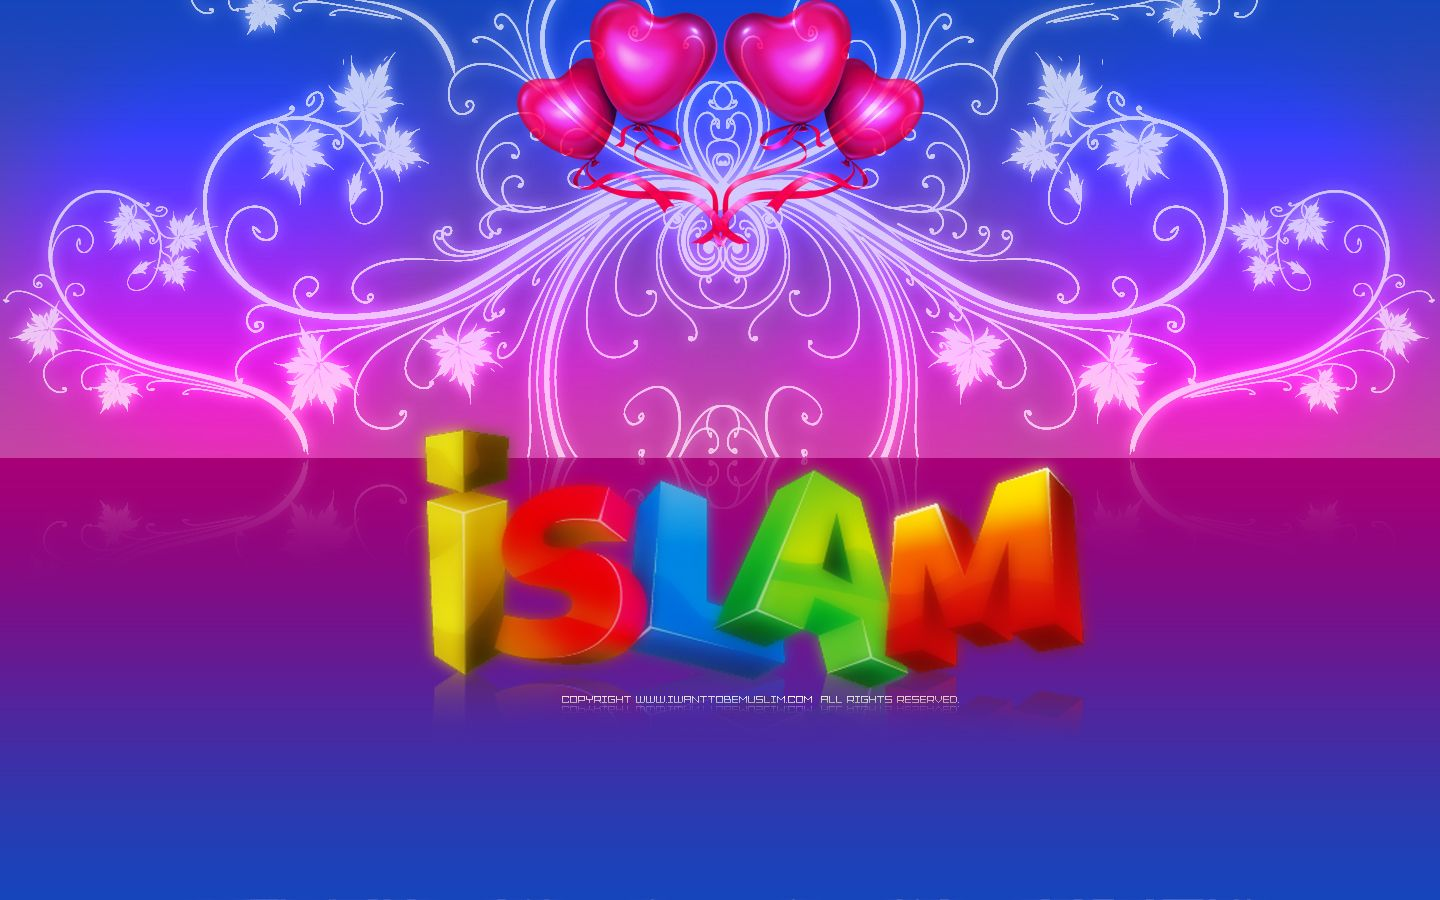 Hd wallpaper name - Islamic Names Wallpapers Find Best Latest Islamic Names Wallpapers For Your Pc Desktop Background Mobile